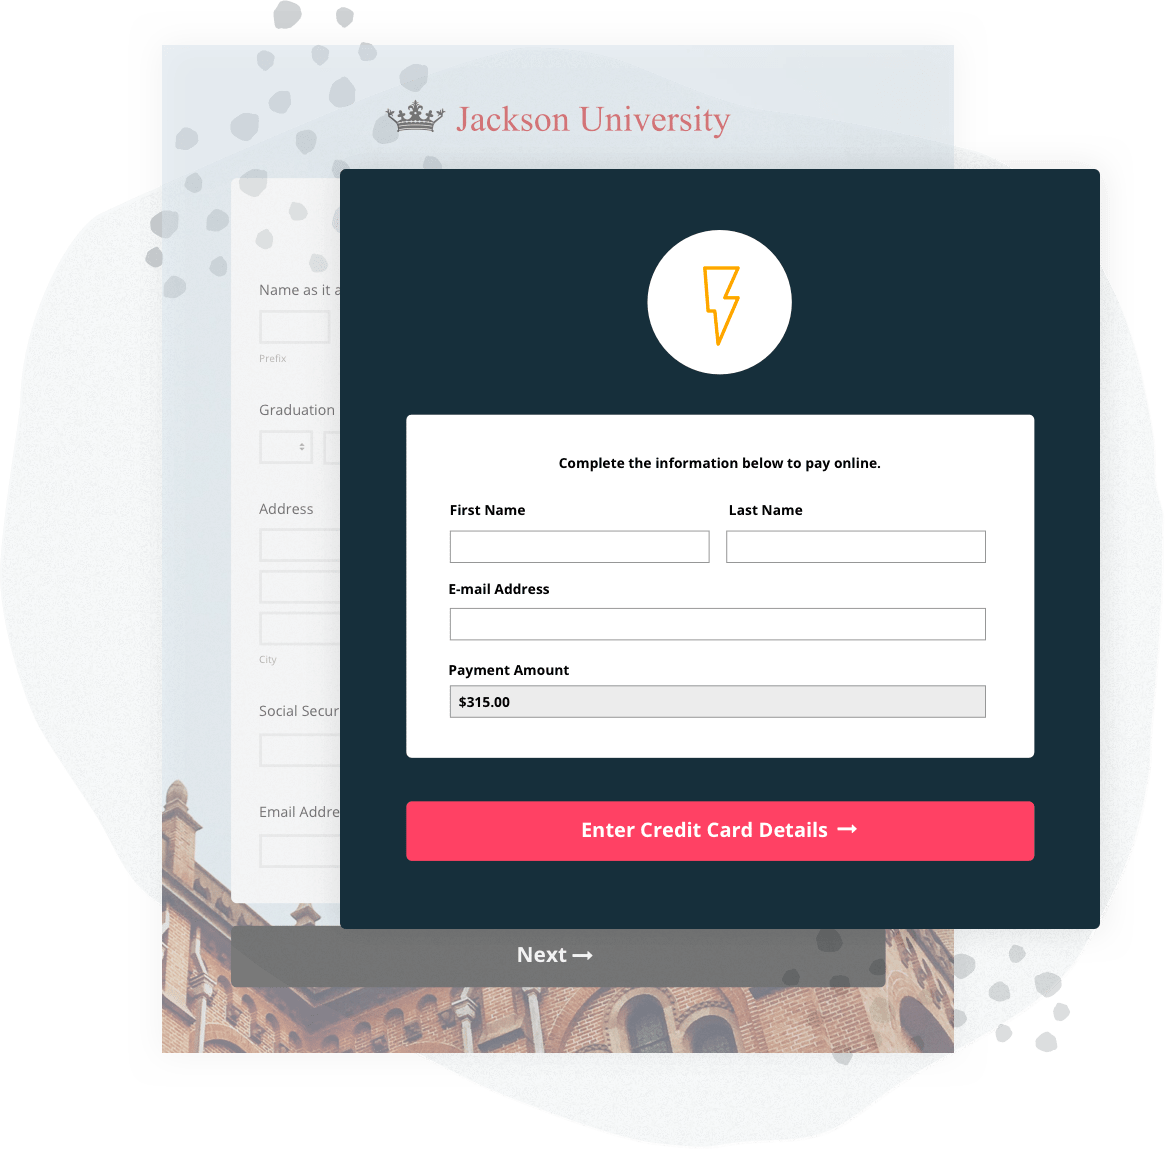 Online Form Builder | Form Creator for Online Forms | Formstack